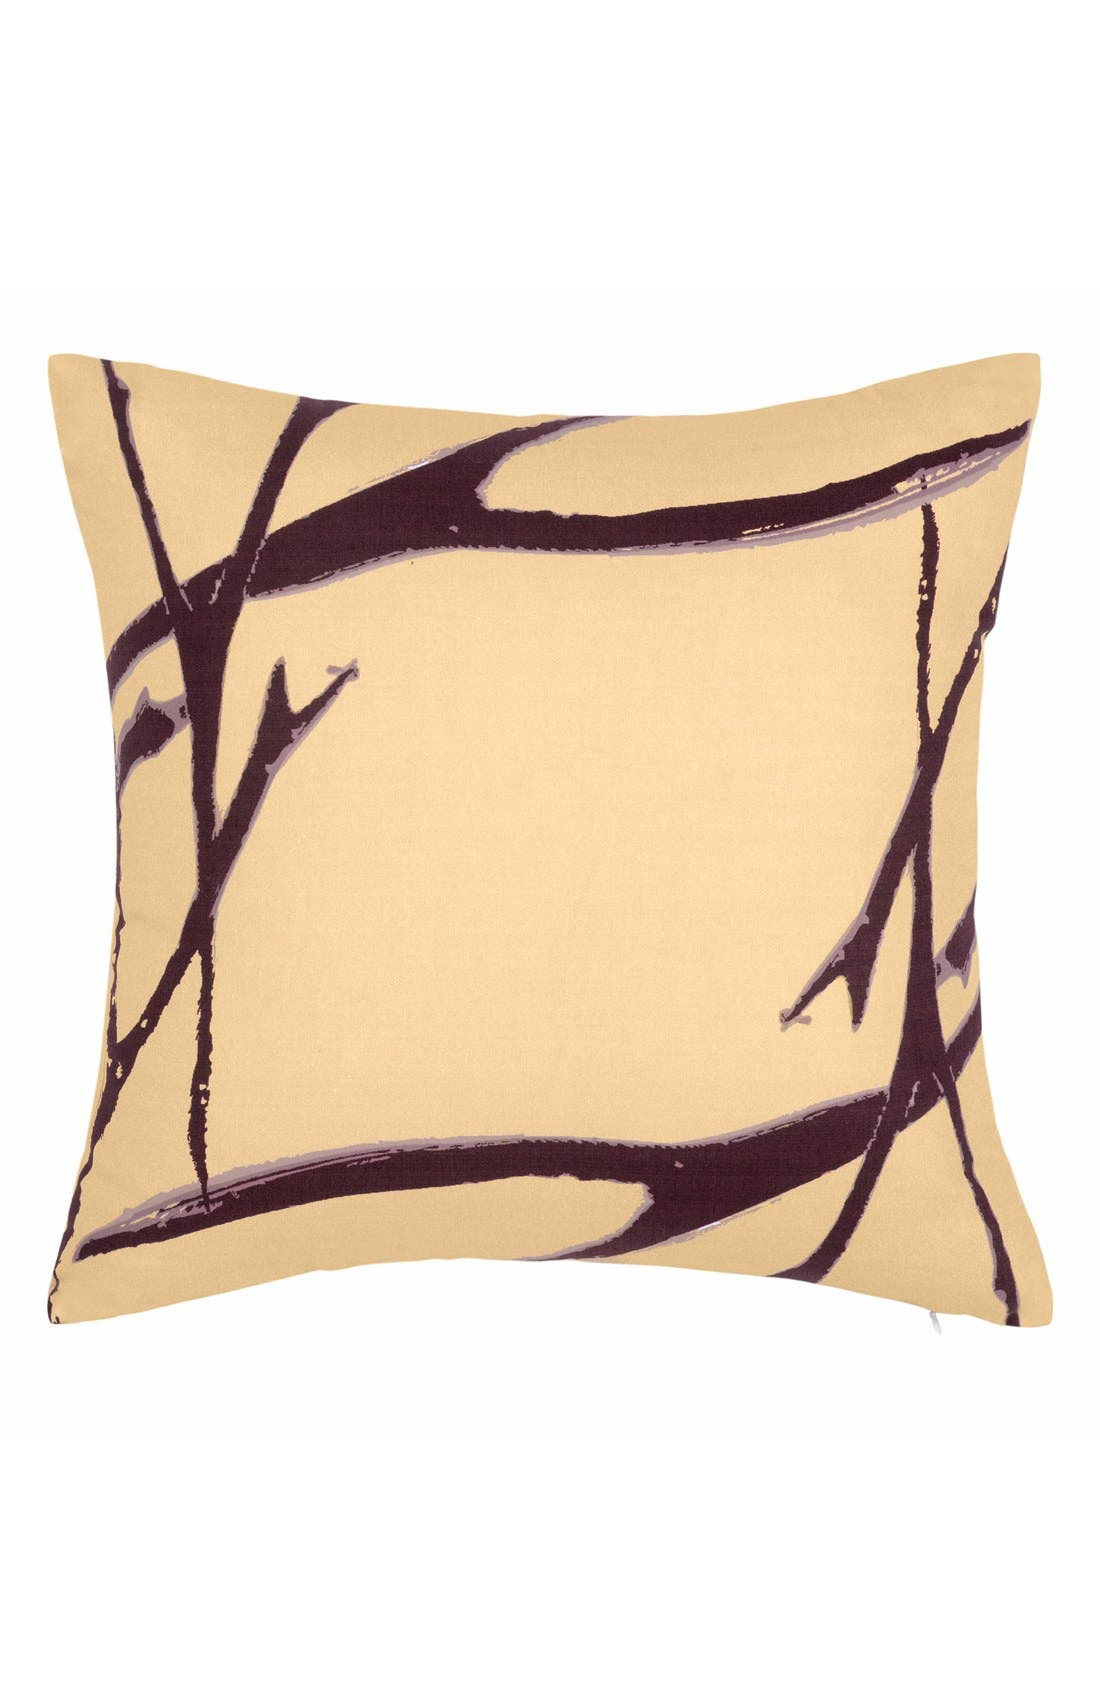 Alternate Image 1 Selected - kensie 'Blossom Branches' Pillow (Online Only)